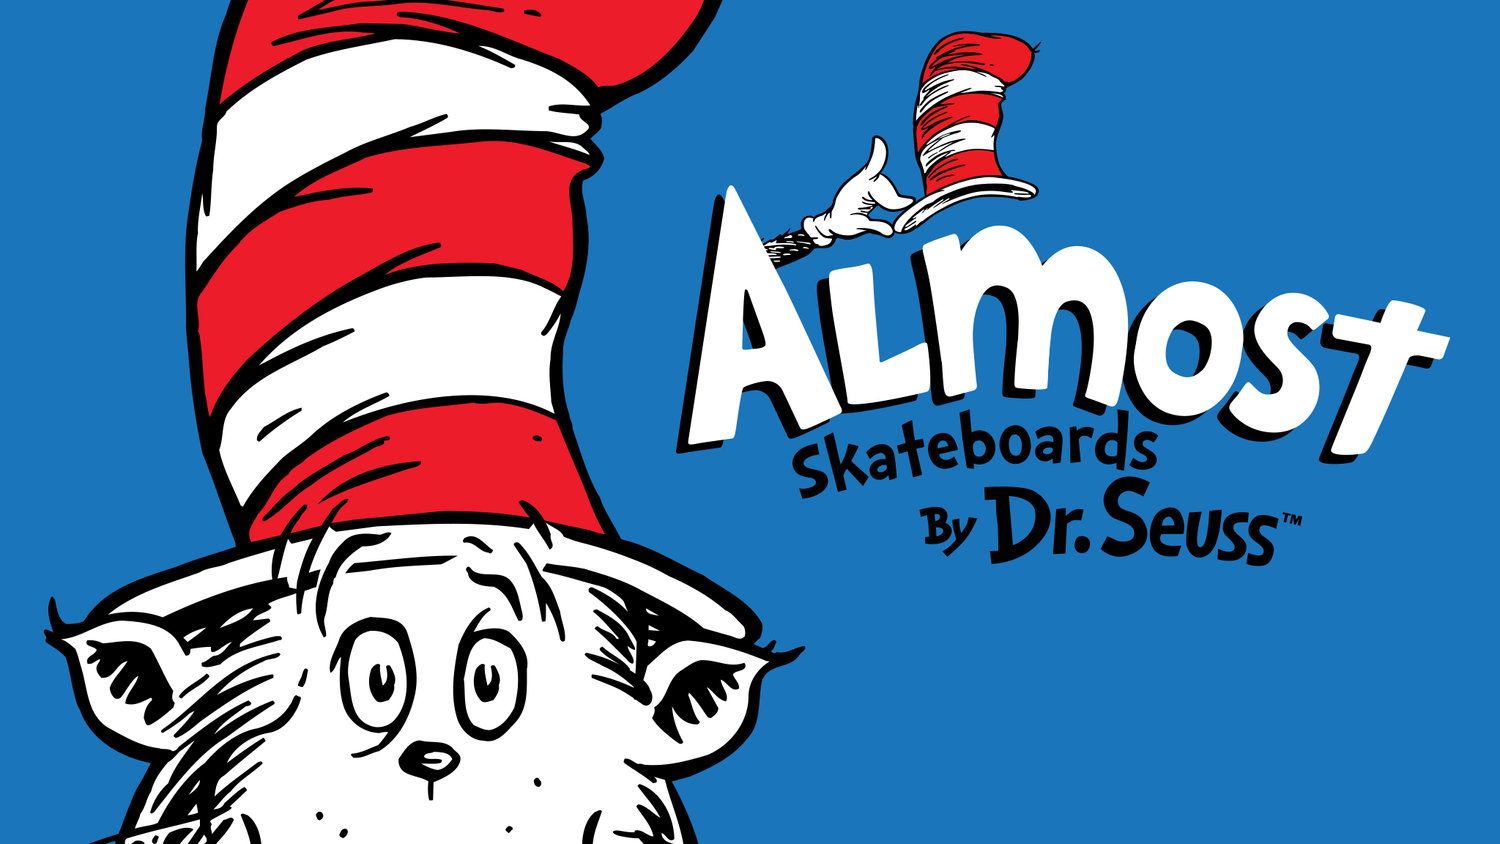 Almost Skateboards by Dr  Seuss | Almost Skateboards